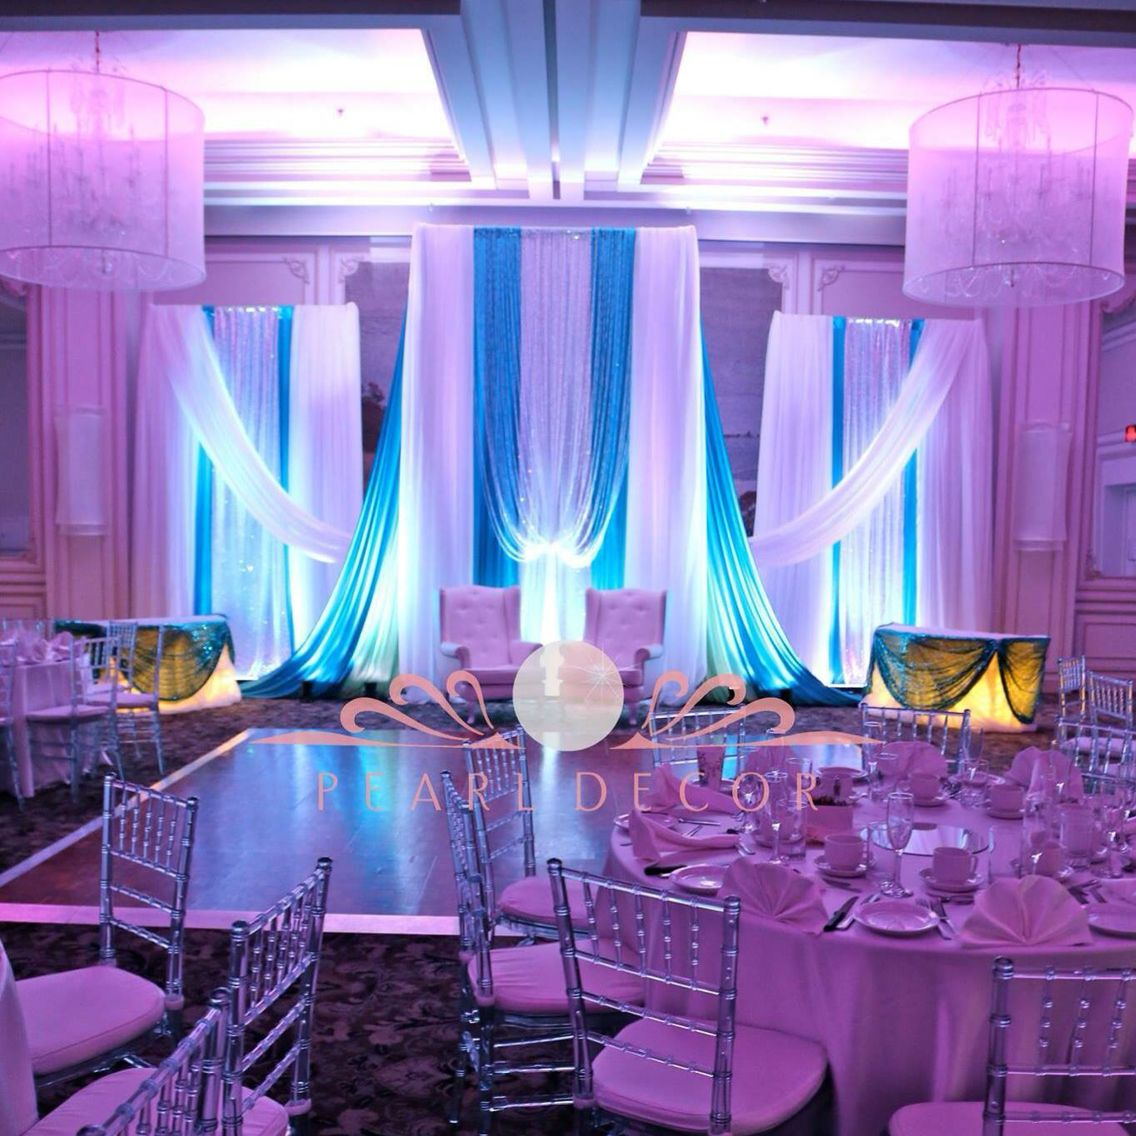 Purple and blue wedding decor  Frozen winter backdrop draping blue  WinterLude Wedding  Pinterest